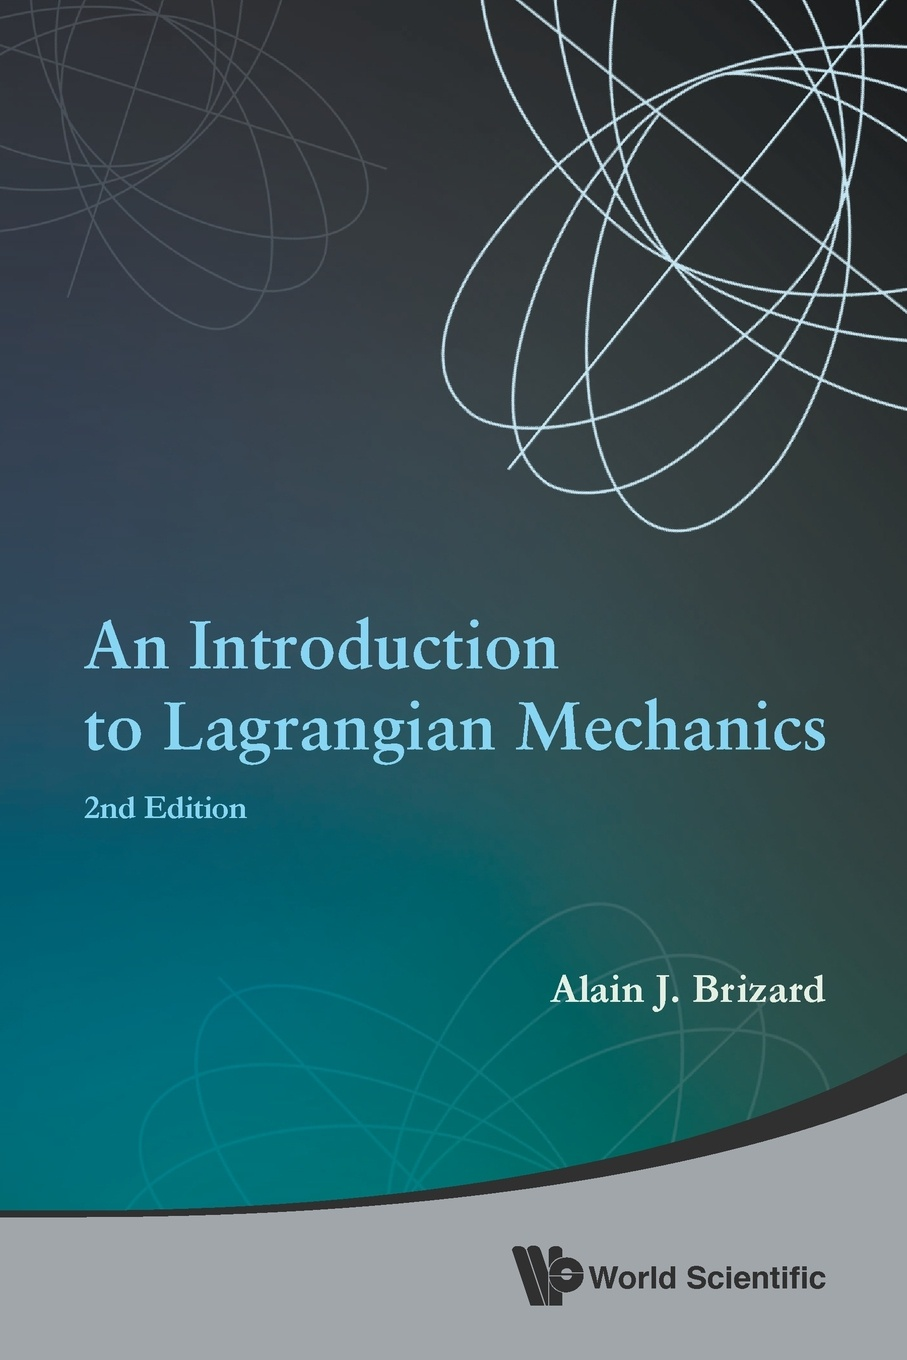 ALAIN J BRIZARD An Introduction to Lagrangian Mechanics. Second Edition yasuhide shindo electromagneto mechanics of material systems and structures